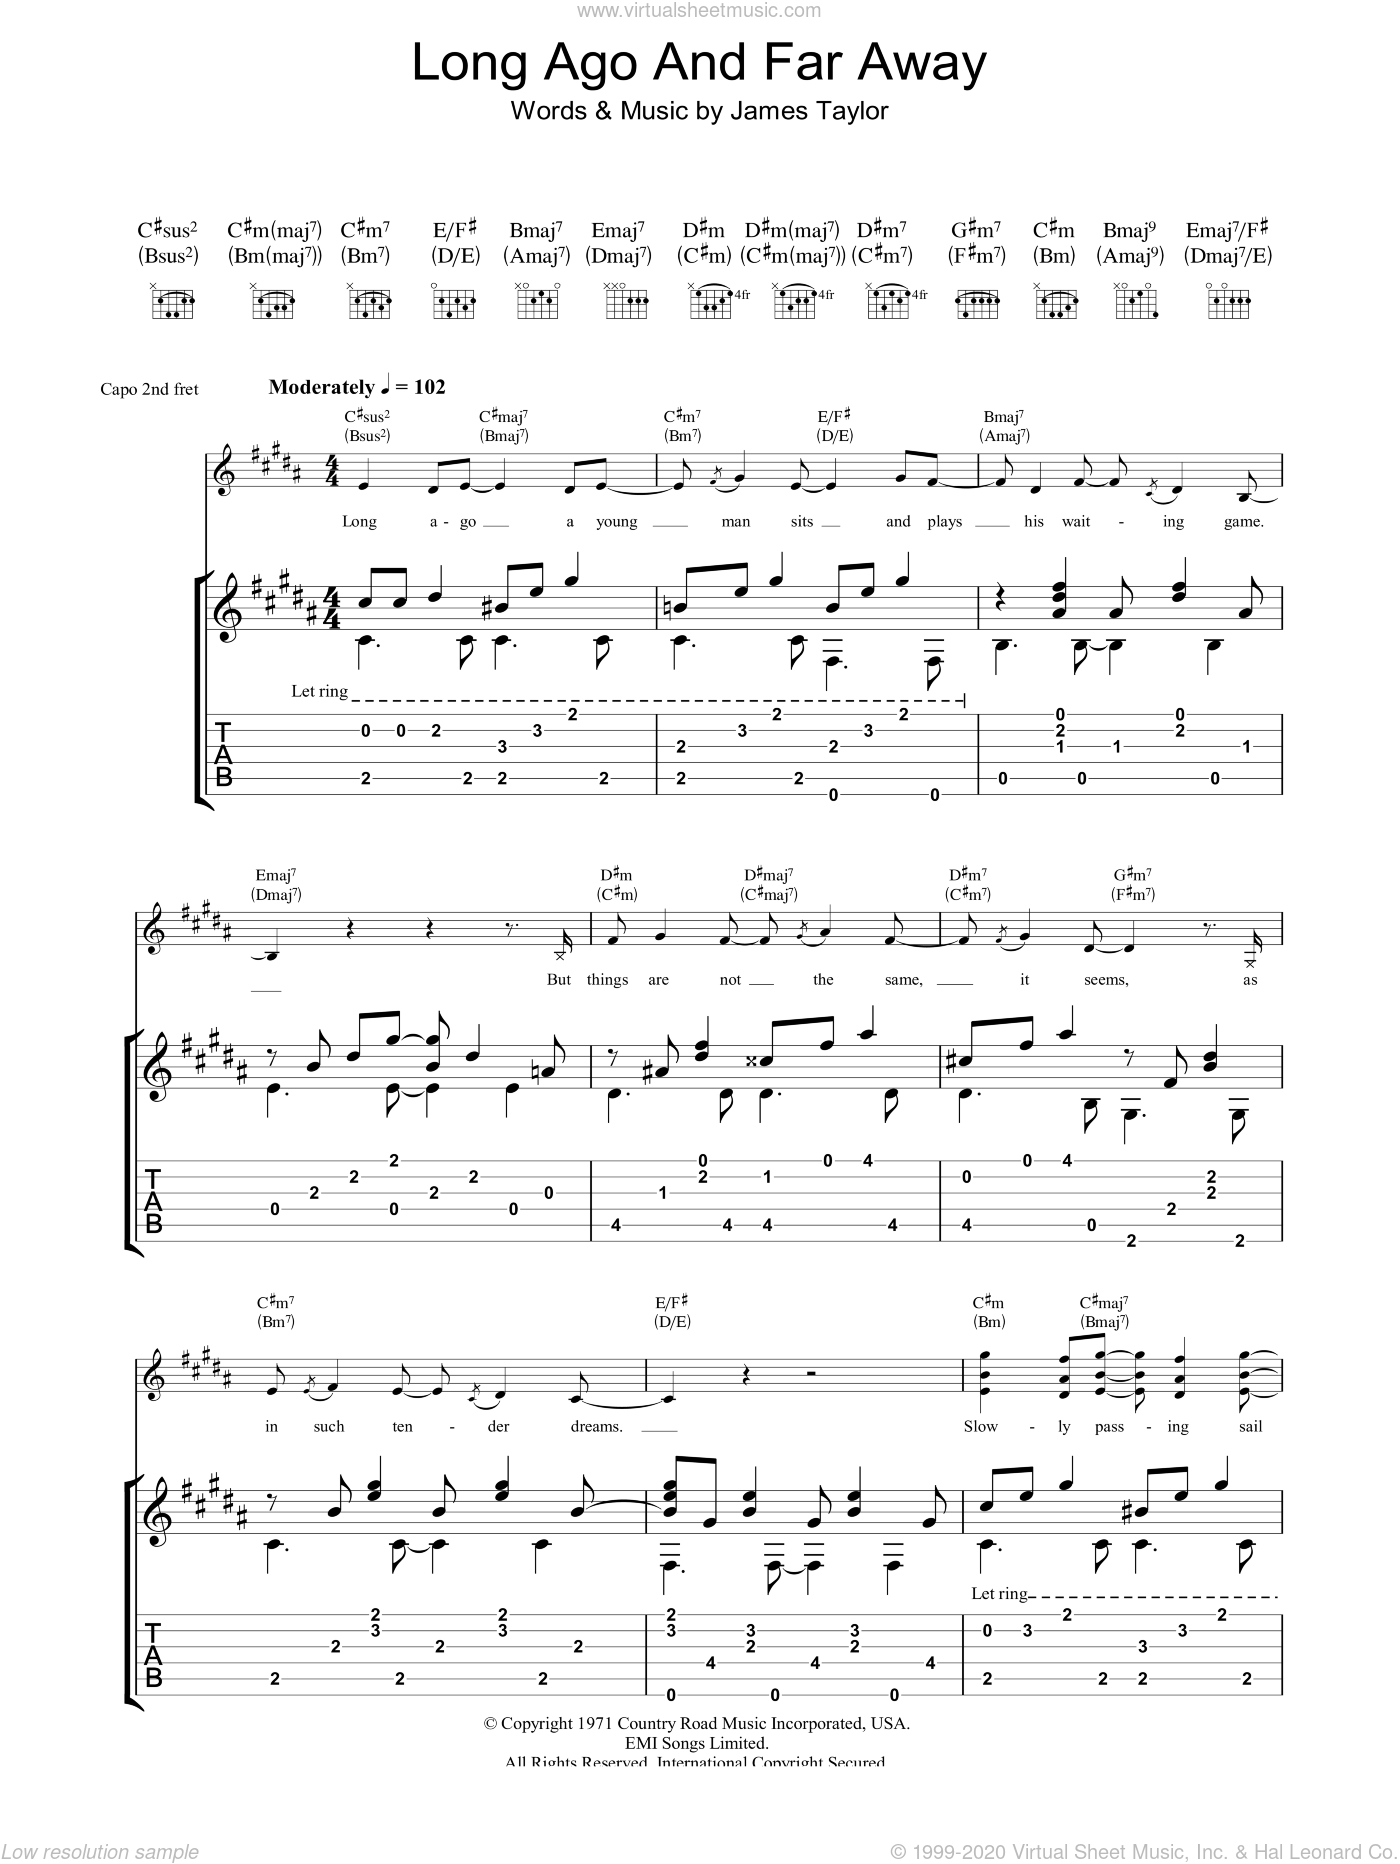 Long Ago And Far Away sheet music for guitar (tablature) by James Taylor. Score Image Preview.